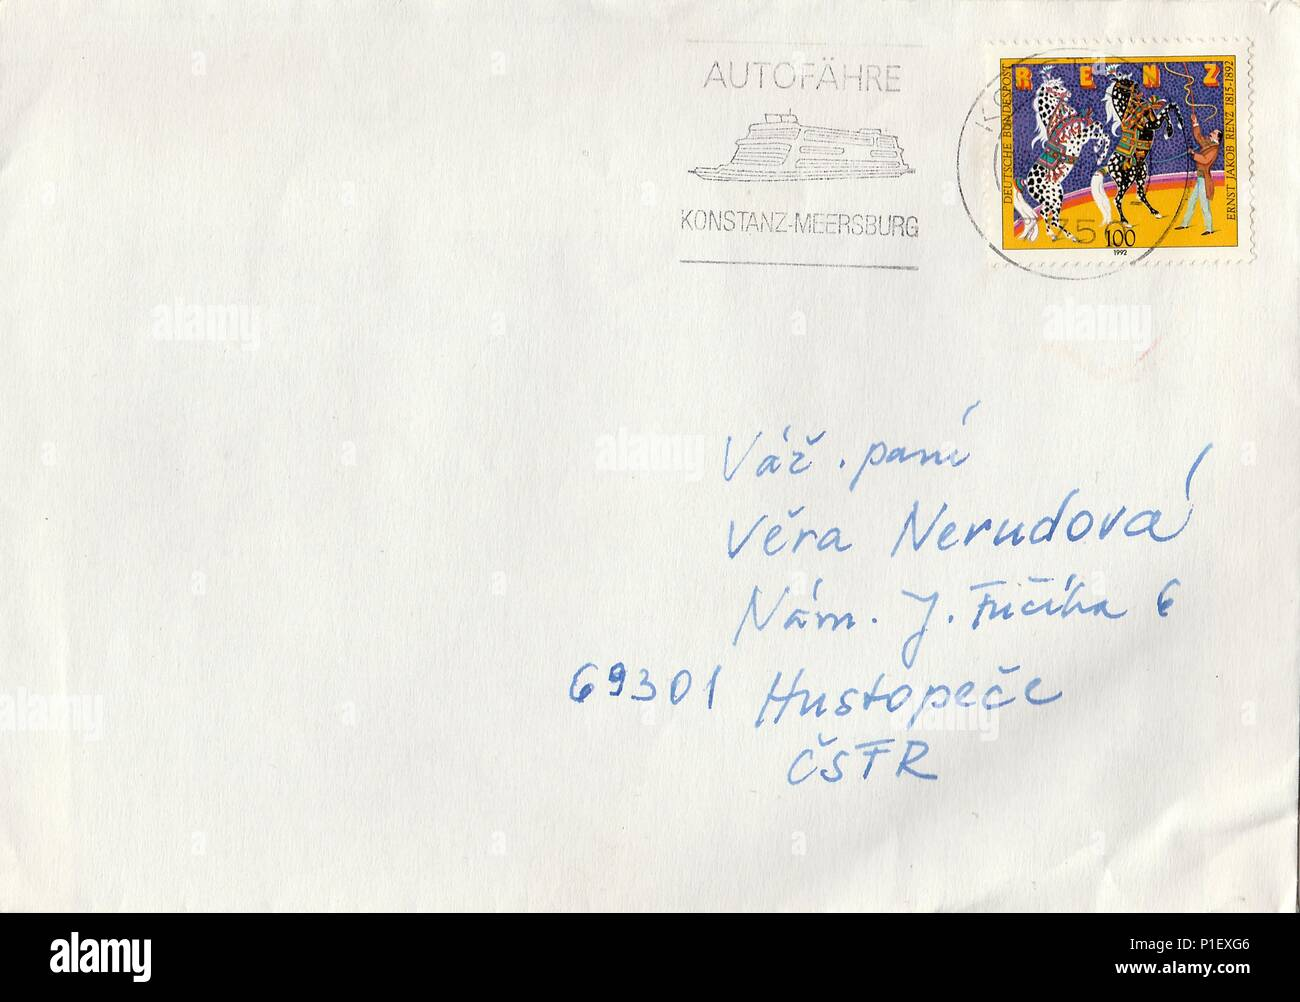 GERMANY - CIRCA 1992: A vintage used envelope and stamps. Rich stain and paper details. Can be used as background. - Stock Image